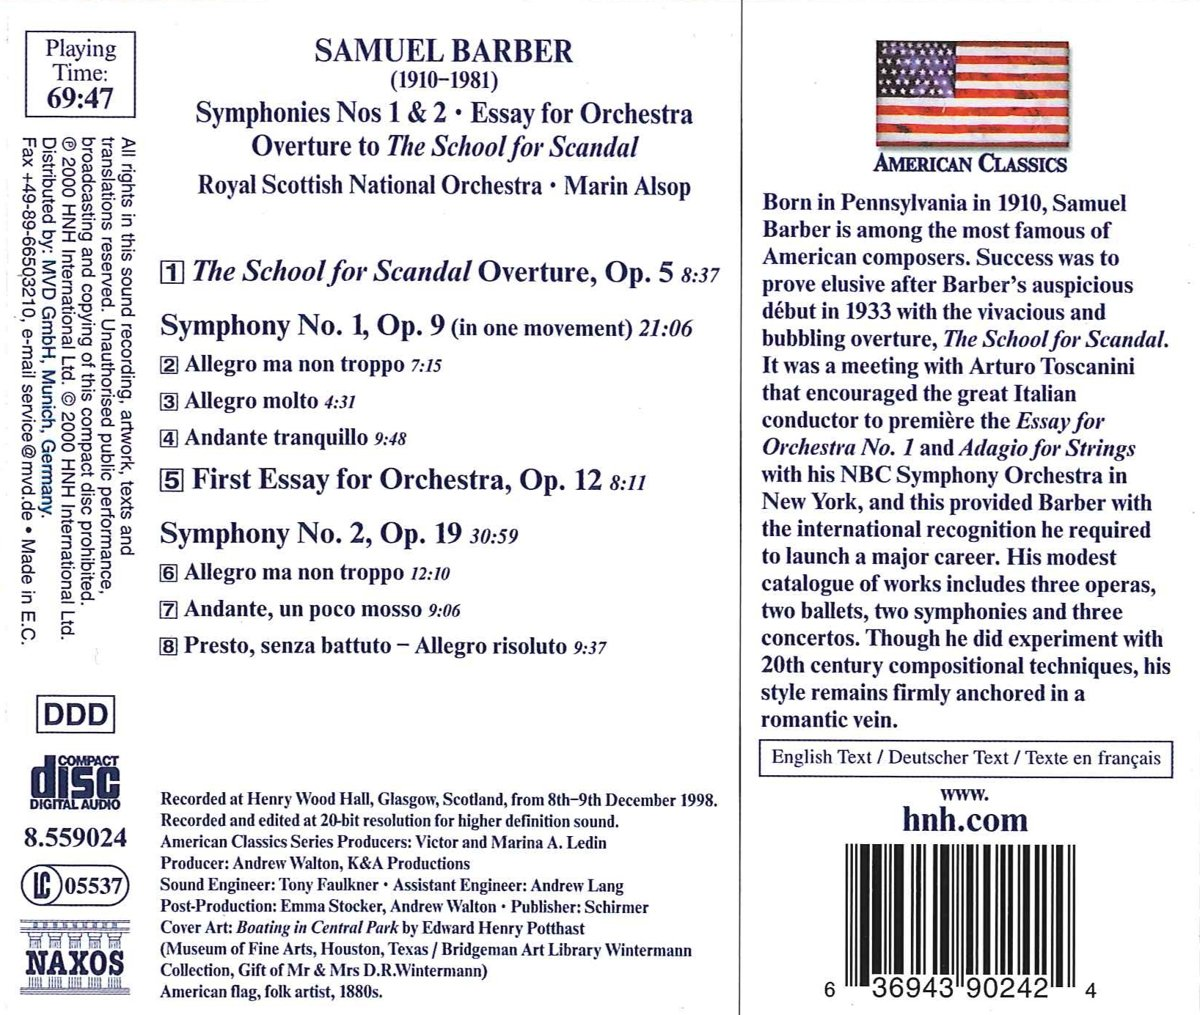 Allegory Of The Cave Summary Essays Samuel Barber Marin Alsop Royal Scottish National Orchestra  Barber  Orchestral Works Vol  Overture The School For Scandal Op    Symphony No Sample Med School Essays also Compare Essays Samuel Barber Marin Alsop Royal Scottish National Orchestra  Descriptive Essay On Food